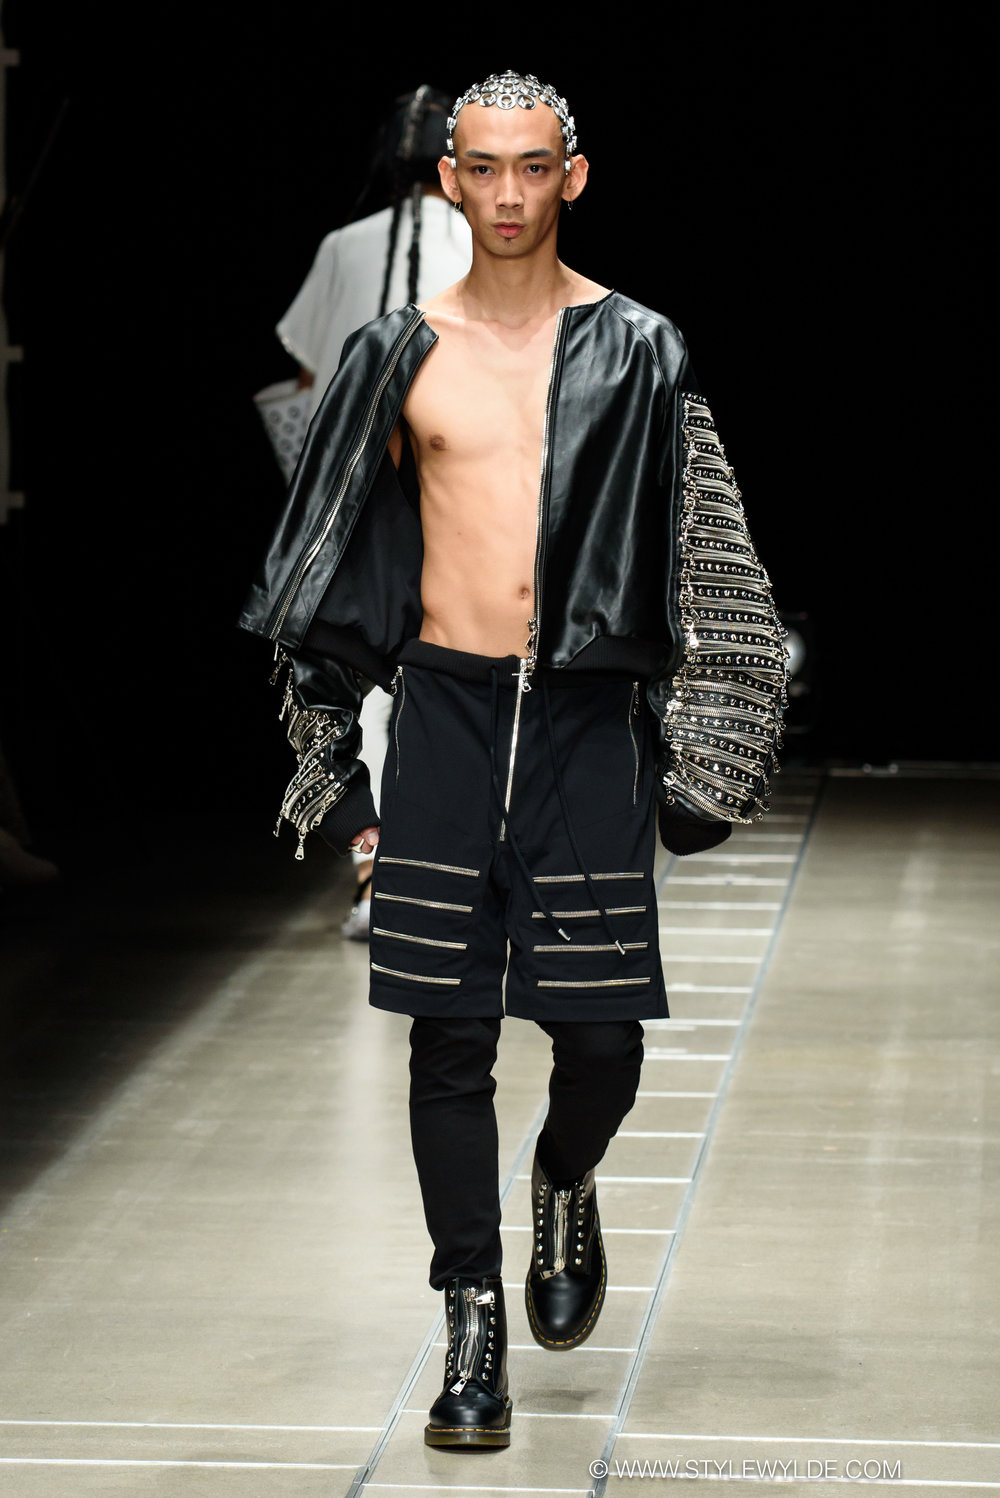 stylewylde_acuod_by_chanu_SS18_runway-10.jpg